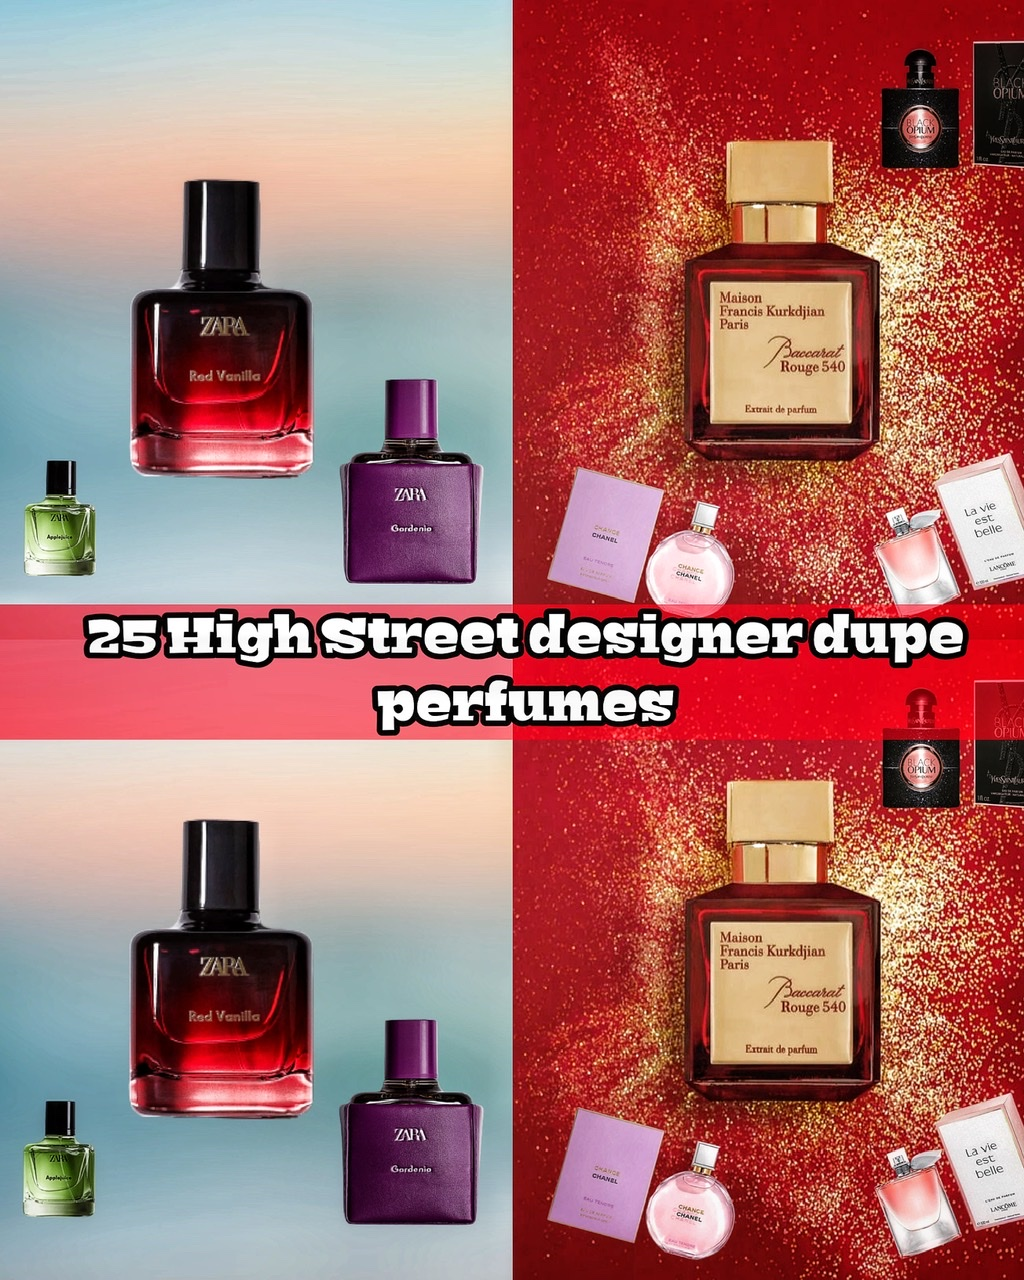 The Best Designer Perfume Dupes 2021 | Boujie on a Budget